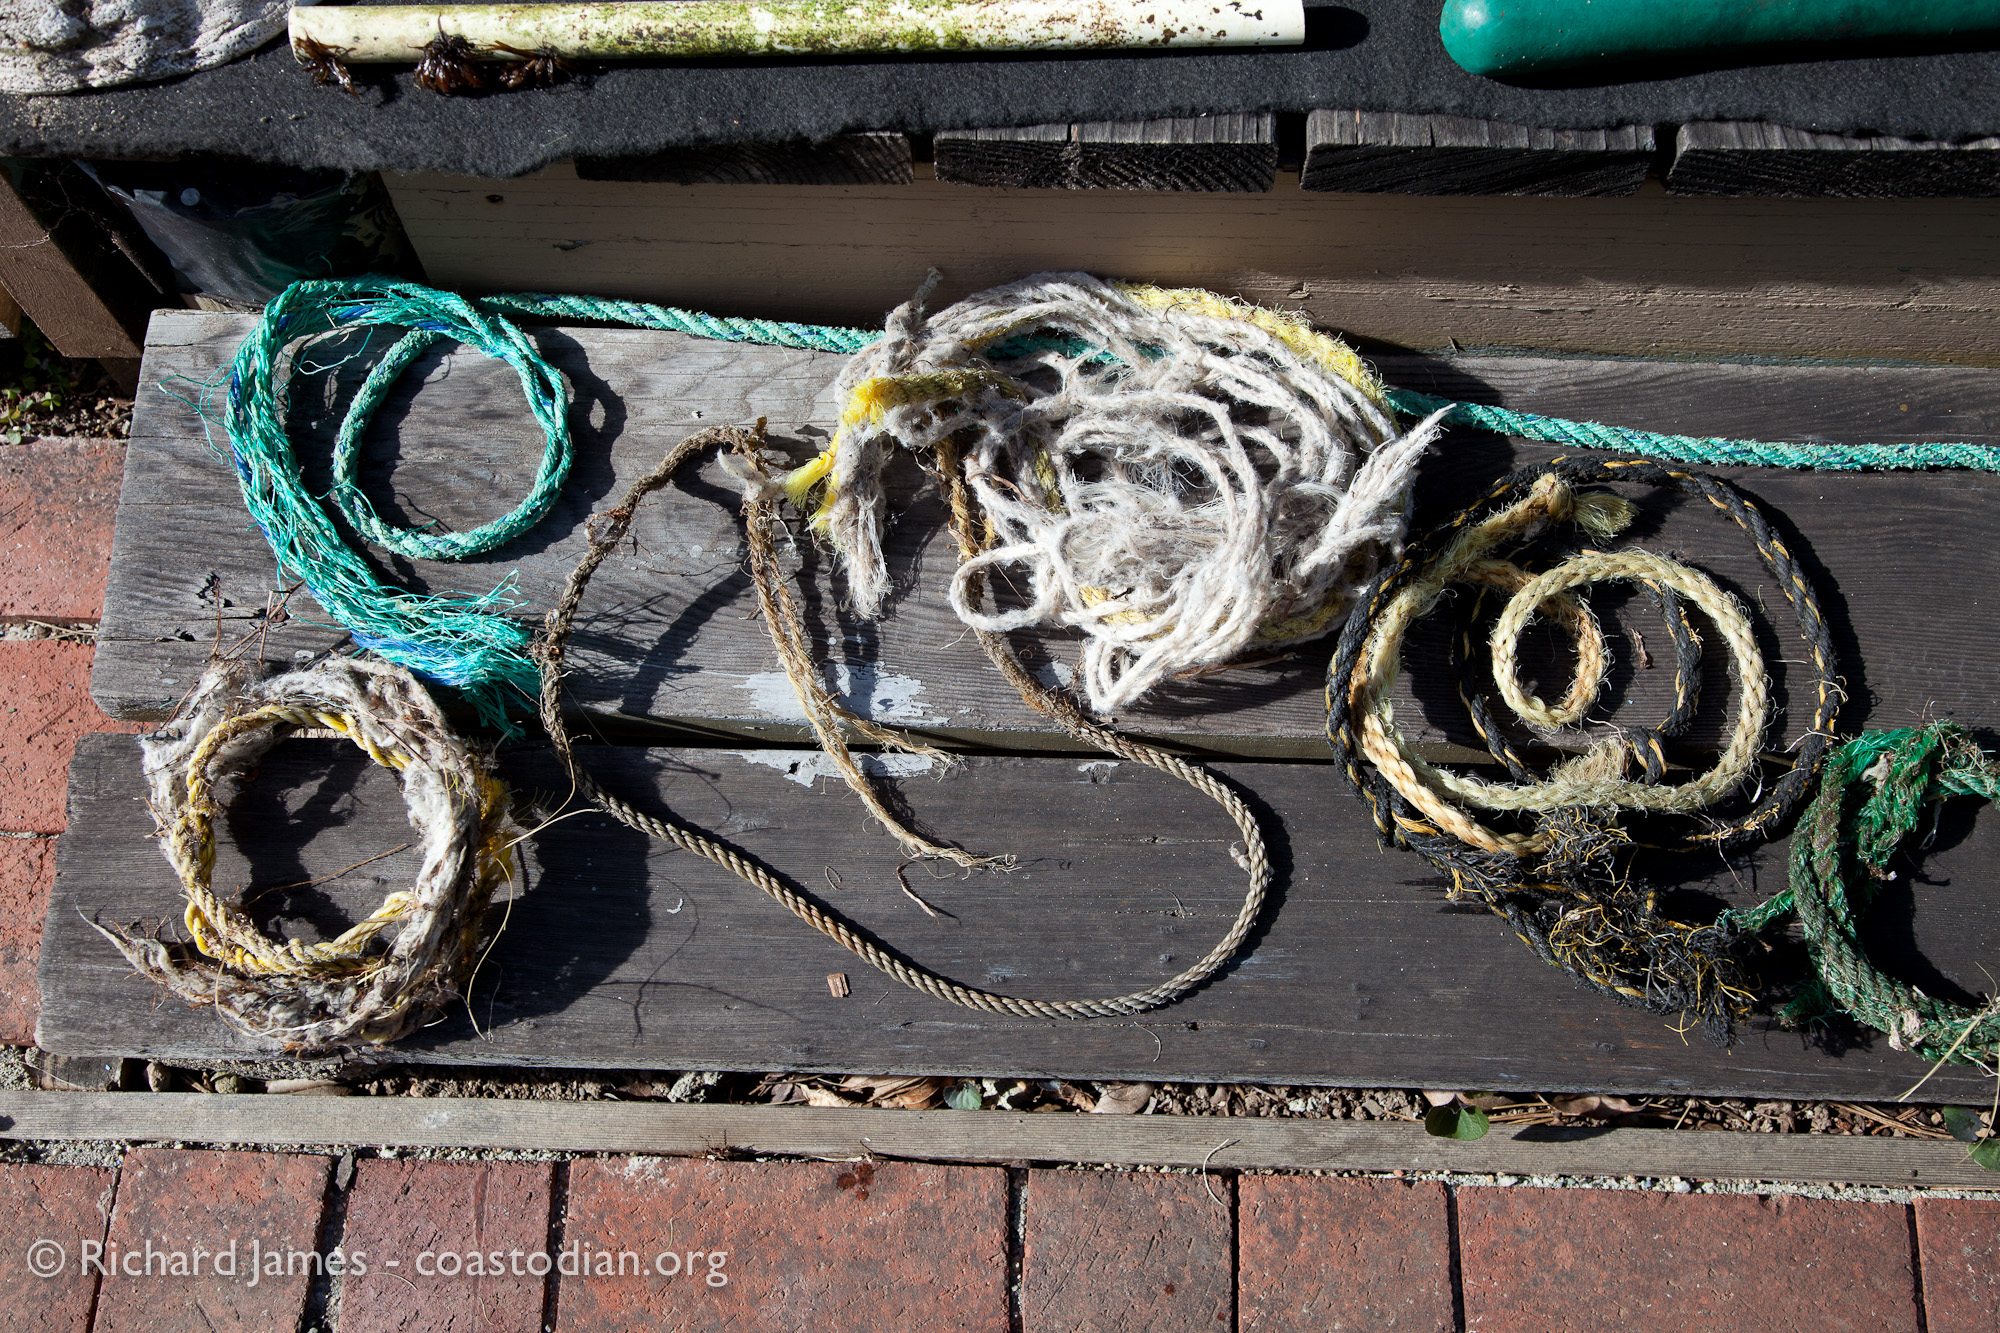 ©Richard James - coastodian.org Abandoned rope remnants collected on shore adjacent to Hog Island Oysters lease M-430-15 on 22 March, 2015